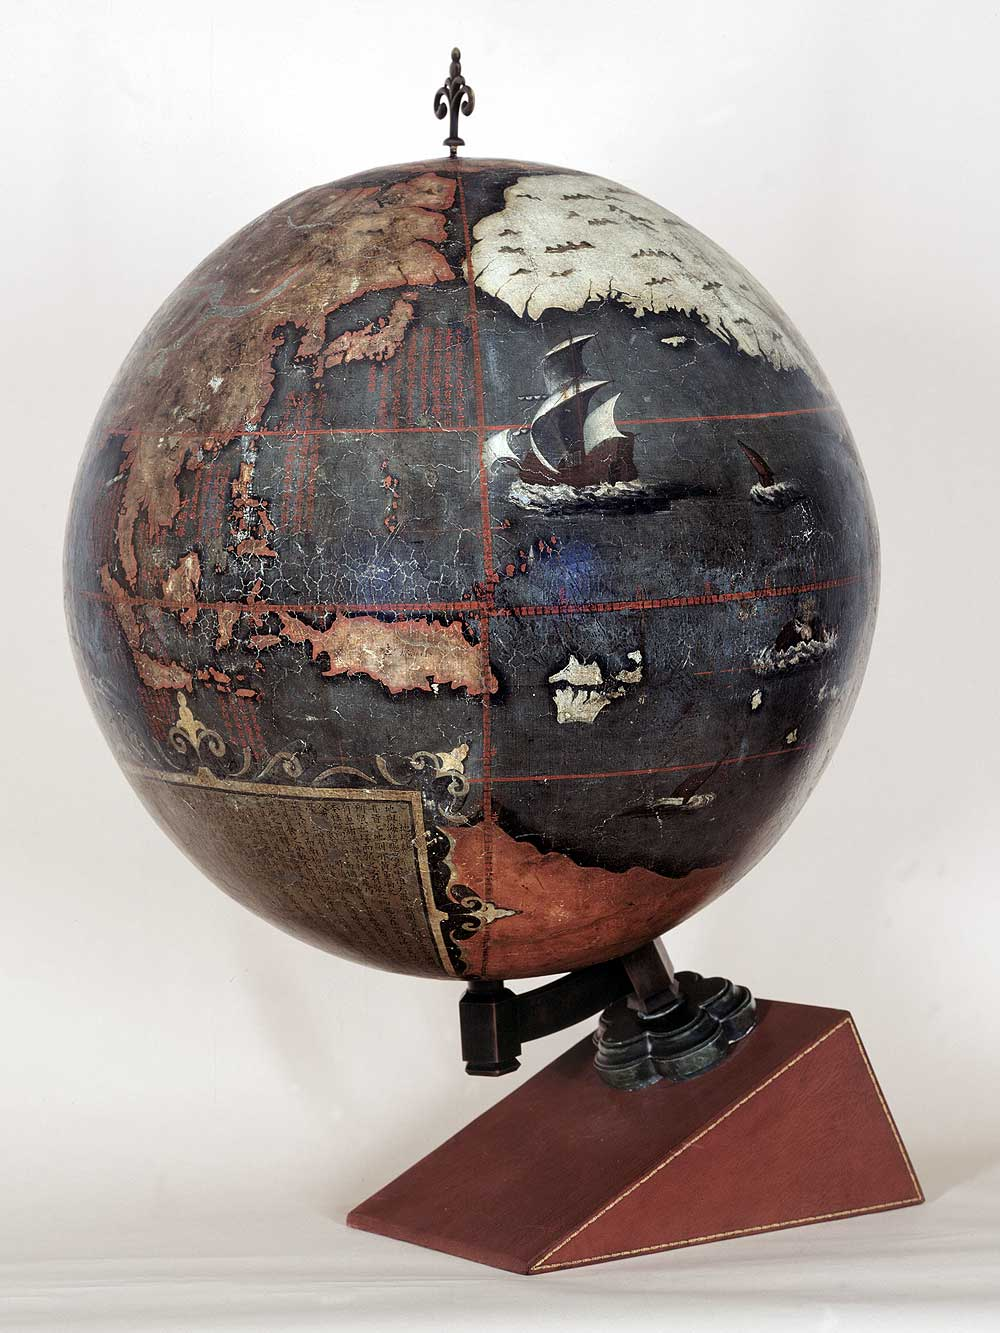 "Terrestrial globe, 1623. China. Lacquer and pigments on wood. British Library, London. Known simply as ""The Chinese Globe,"" this is the oldest extant globe made in China. It was a collaborative work between European Jesuits and Chinese literati. The Chinese text explains the concepts of longitude and latitude, and discusses astronomical observations. It incorporates knowledge about the magnetism of the earth from Chinese sources, which were more advanced on this topic than those in the West. Synthesizing Western and Asian knowledge, this might be regarded as the first ""global globe."""